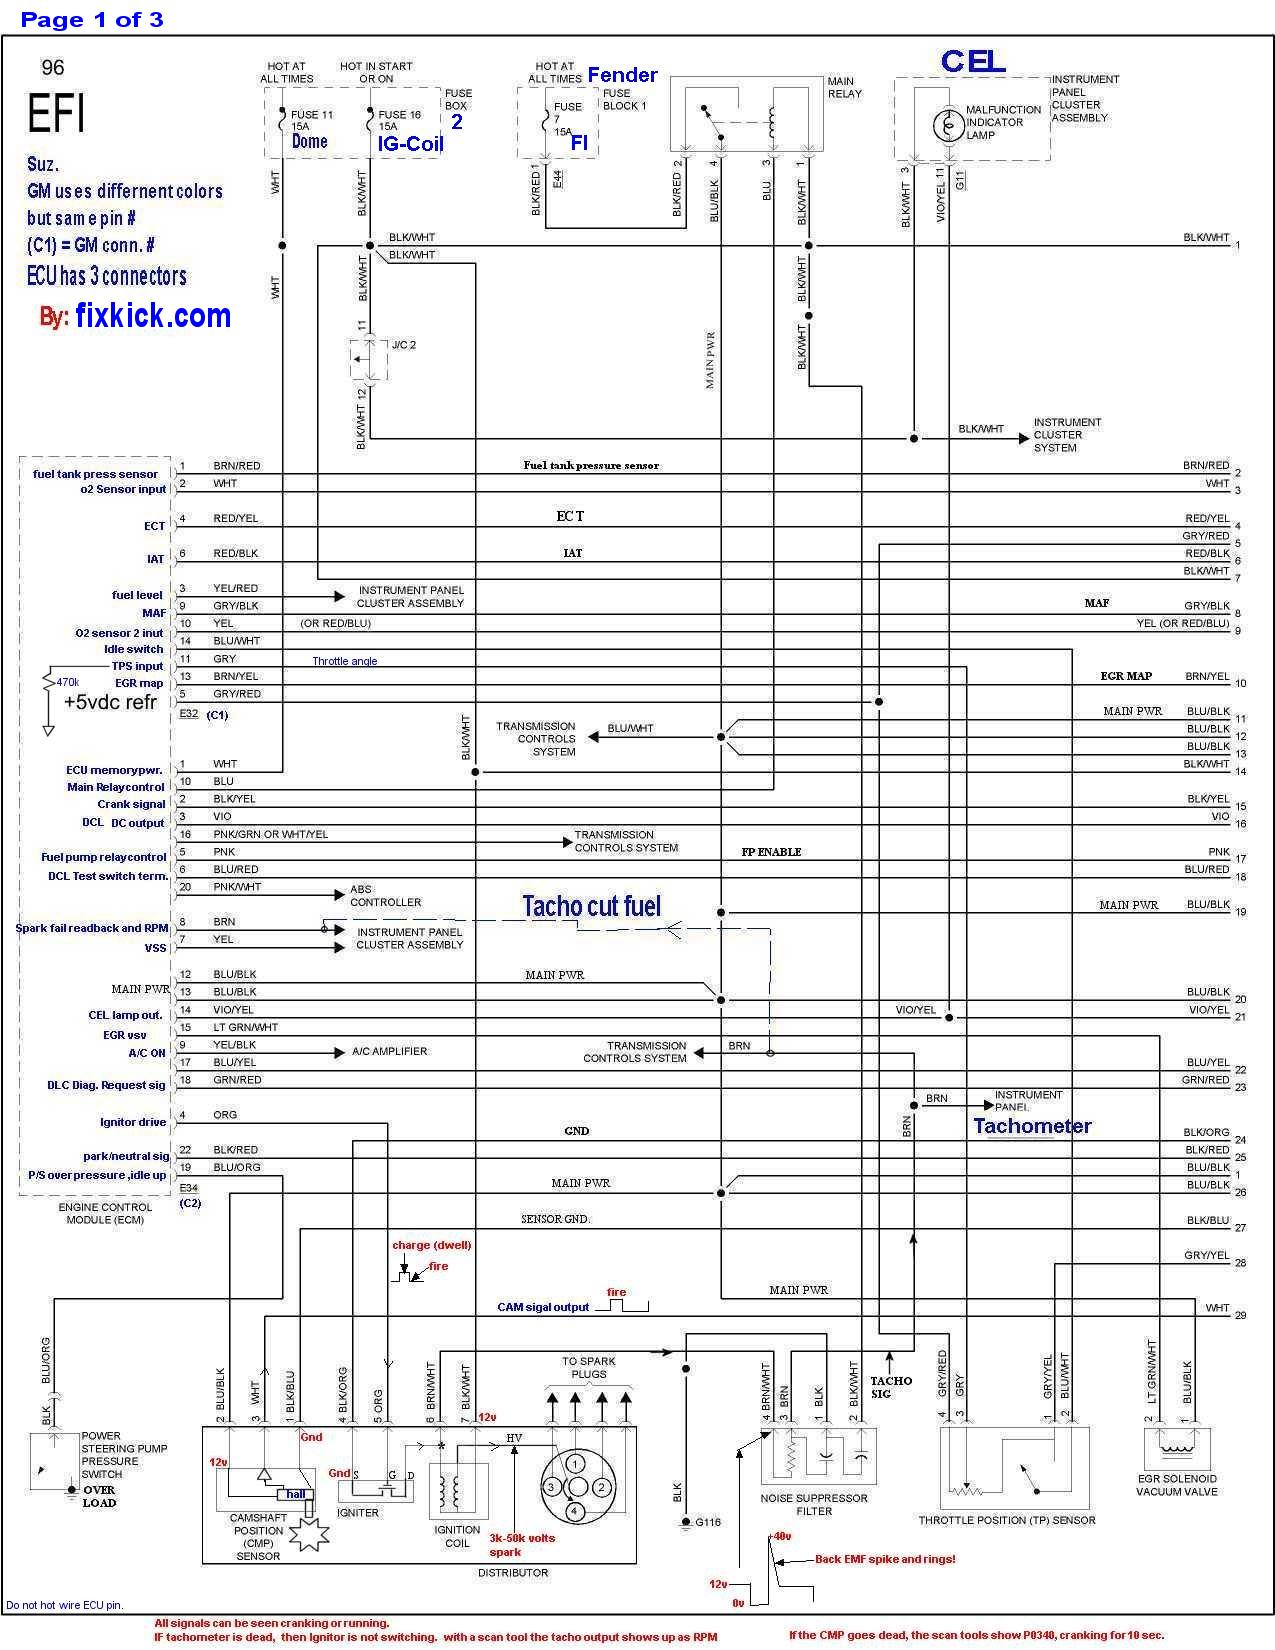 hight resolution of 3 page with annotations the dlc cab wires up like this the ecu conn look like this 96 only